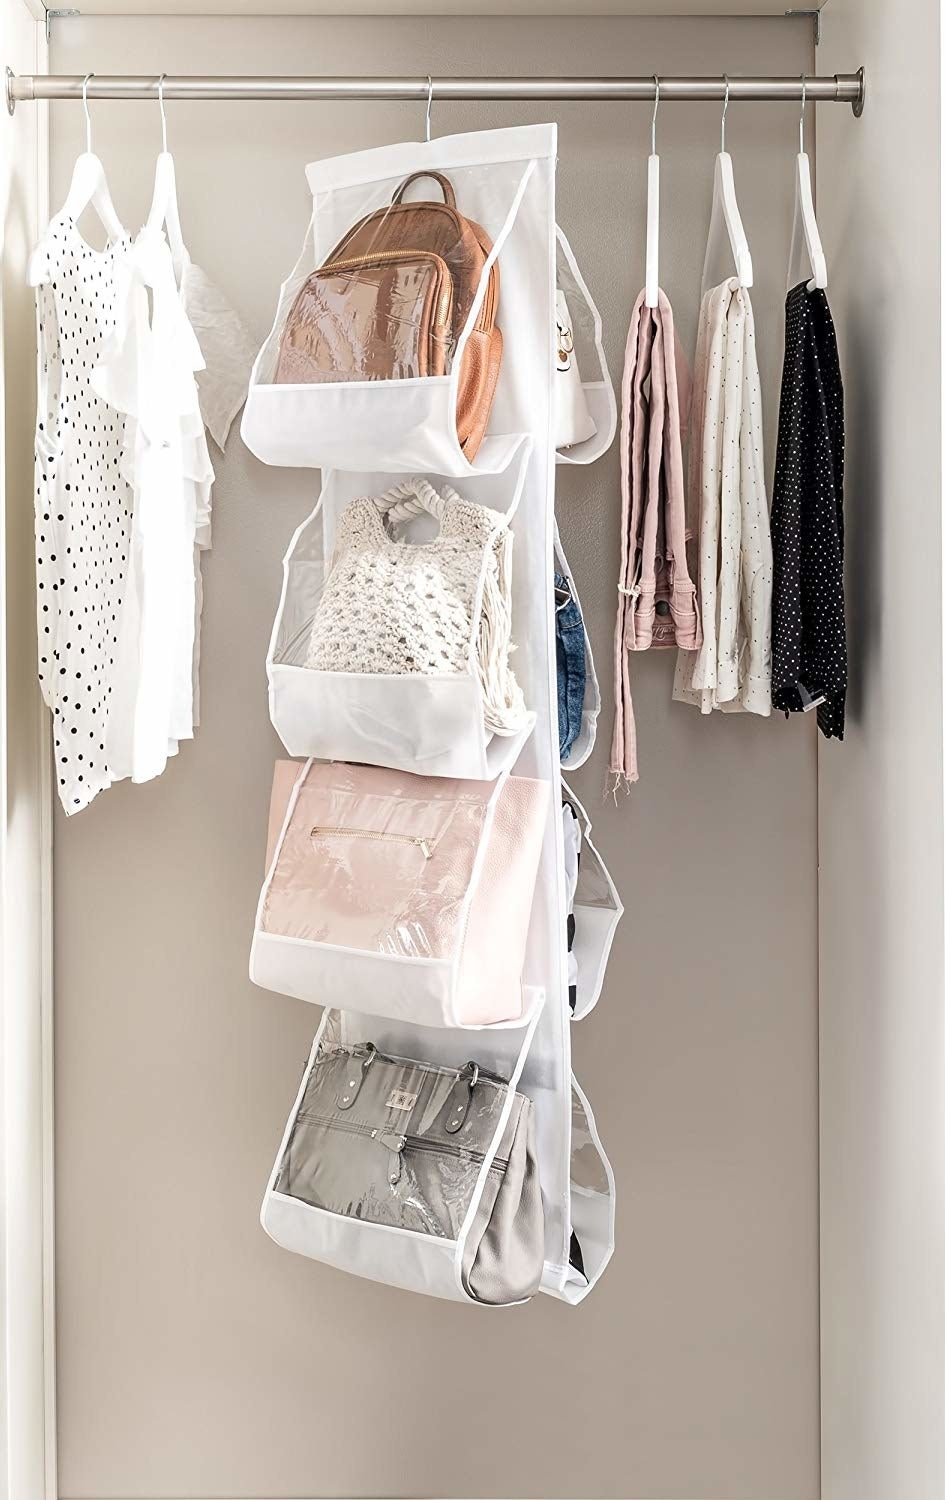 vertical purse organizer hanging in the closet